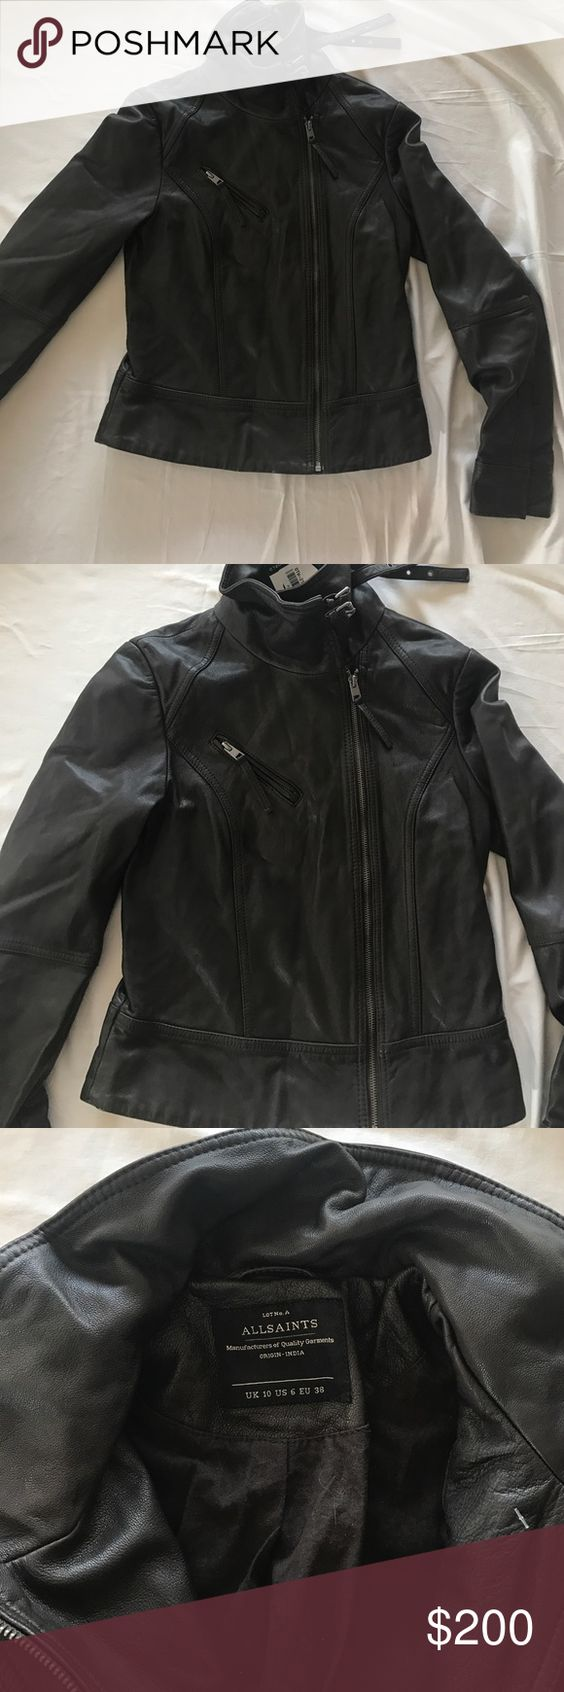 Brand New AllSaints Leather Bomber Jacket | Abs, Coats and Bomber ...